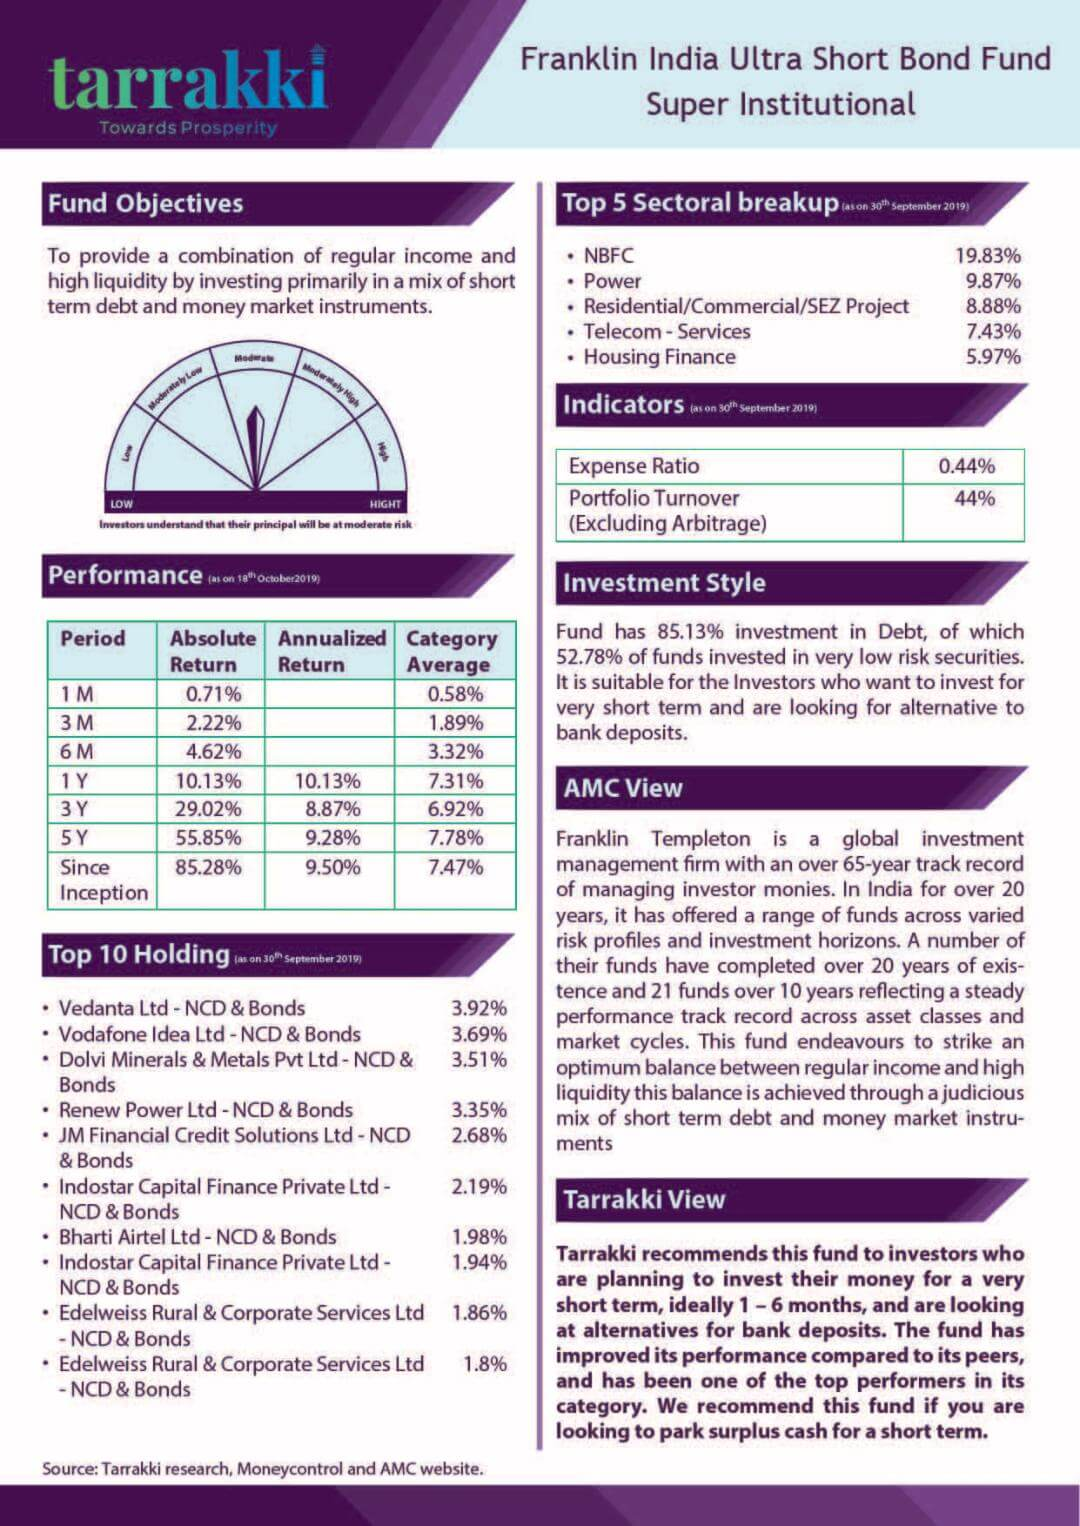 Franklin India Ultra Short Bond Fund